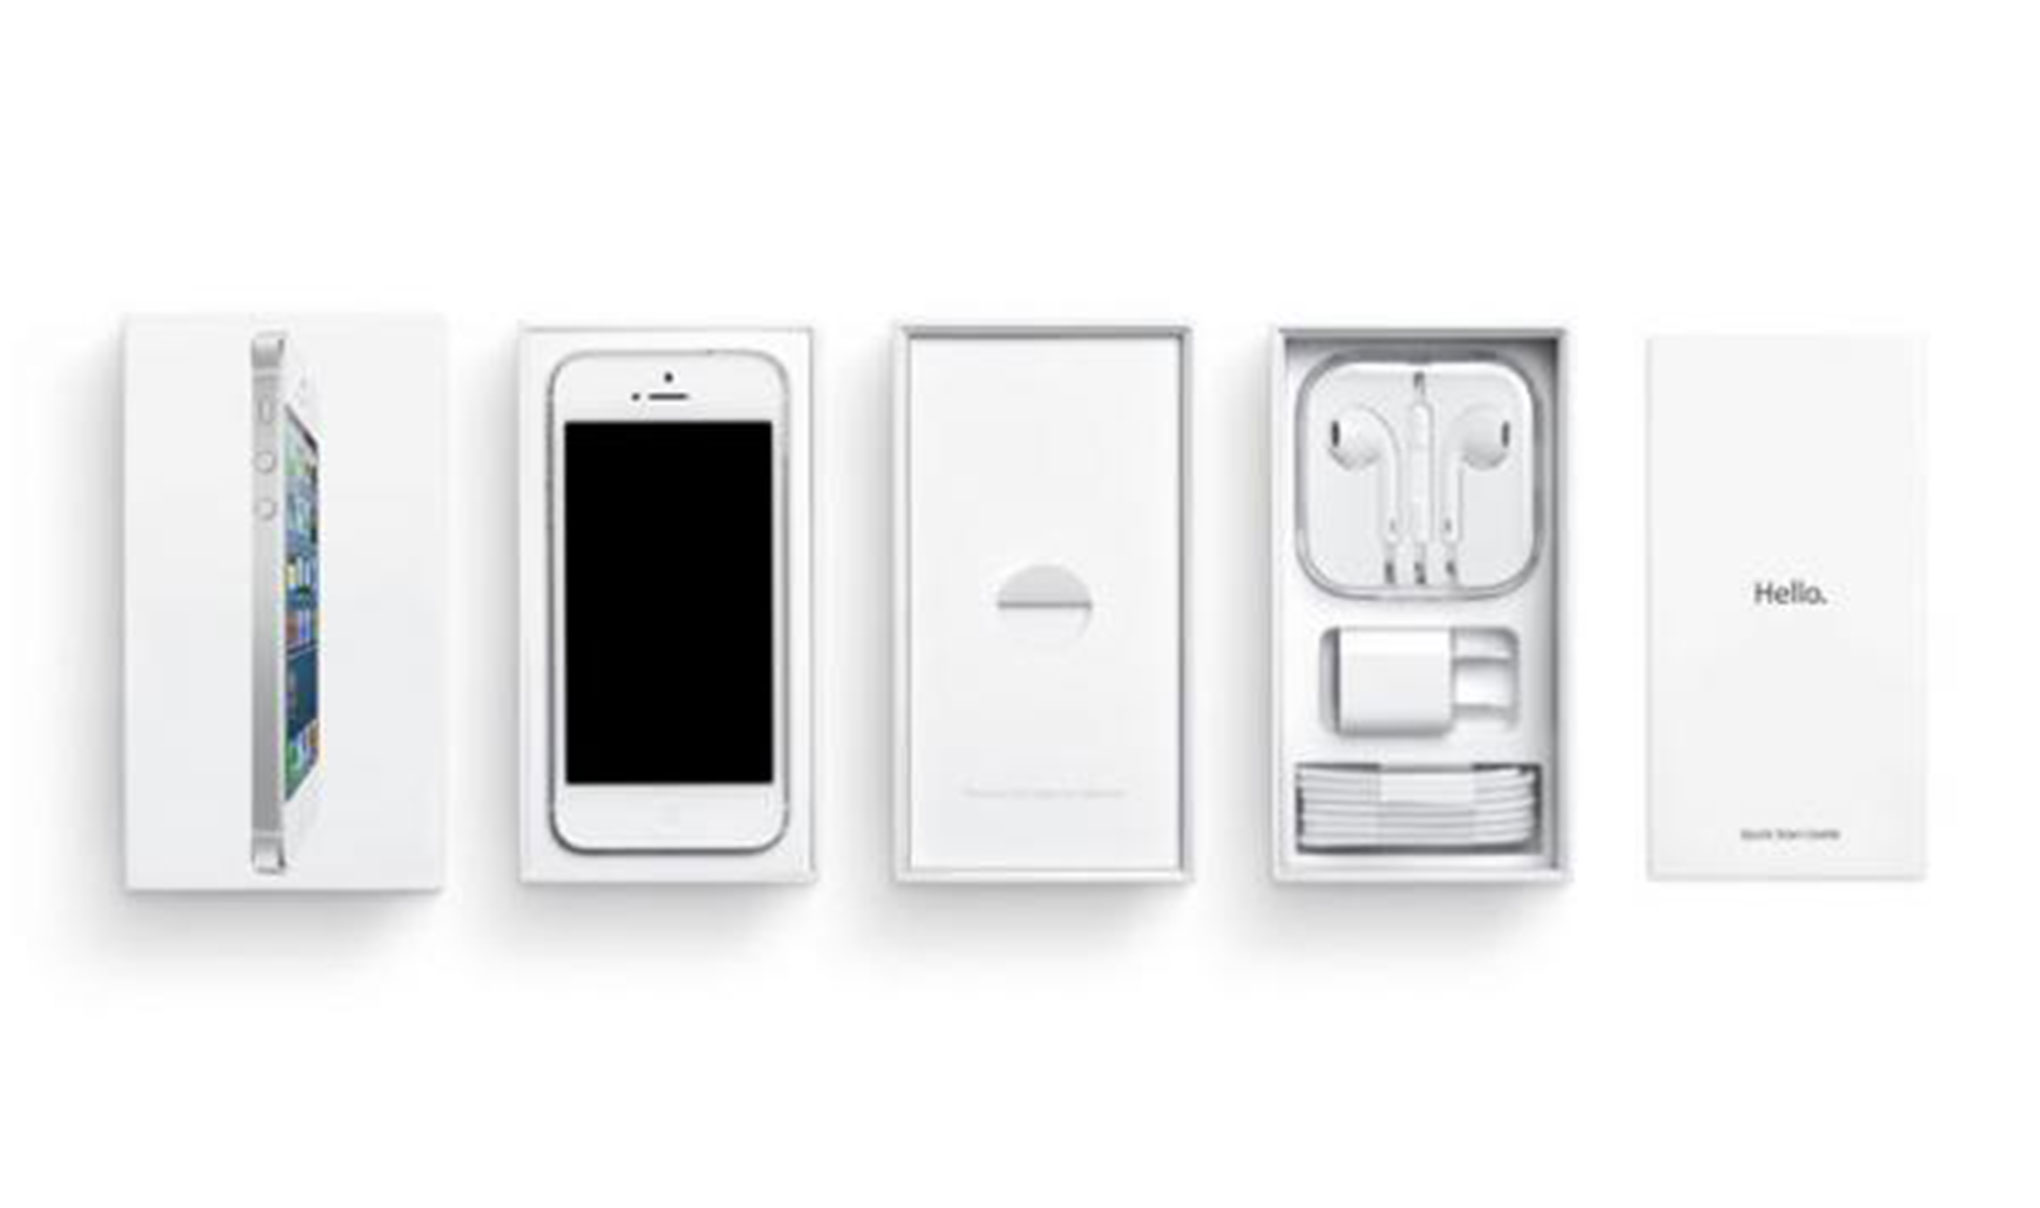 iPhone packaging, Featured image for the blog 'The Importance of Effective Packaging Design'